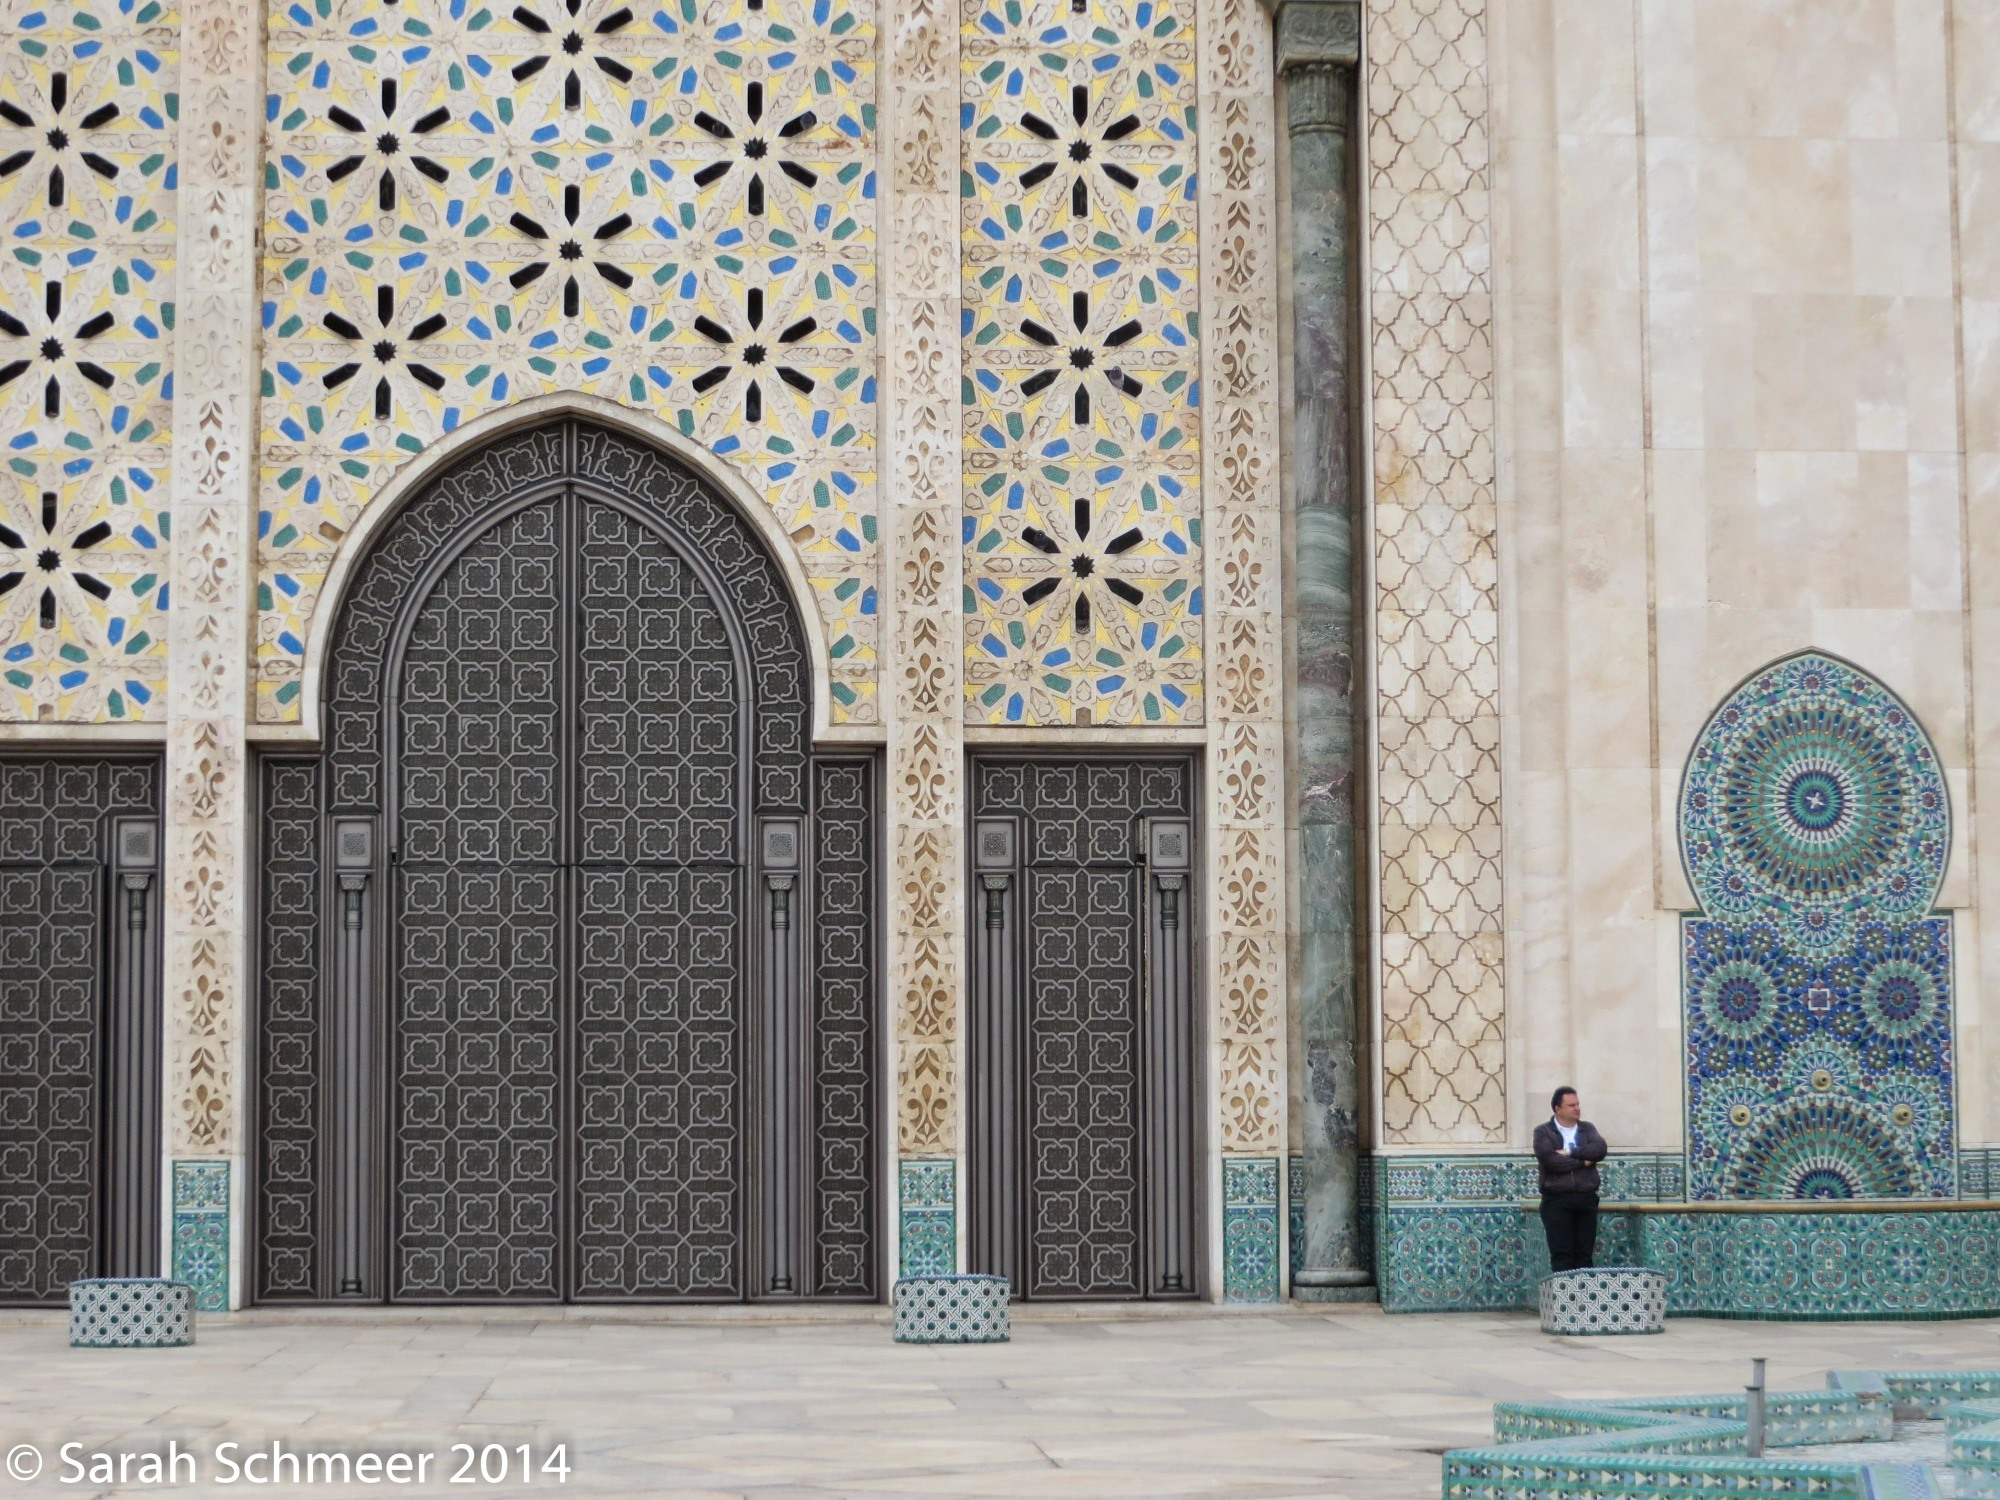 One of the entrances to the Hassan II mosque in Casablanca